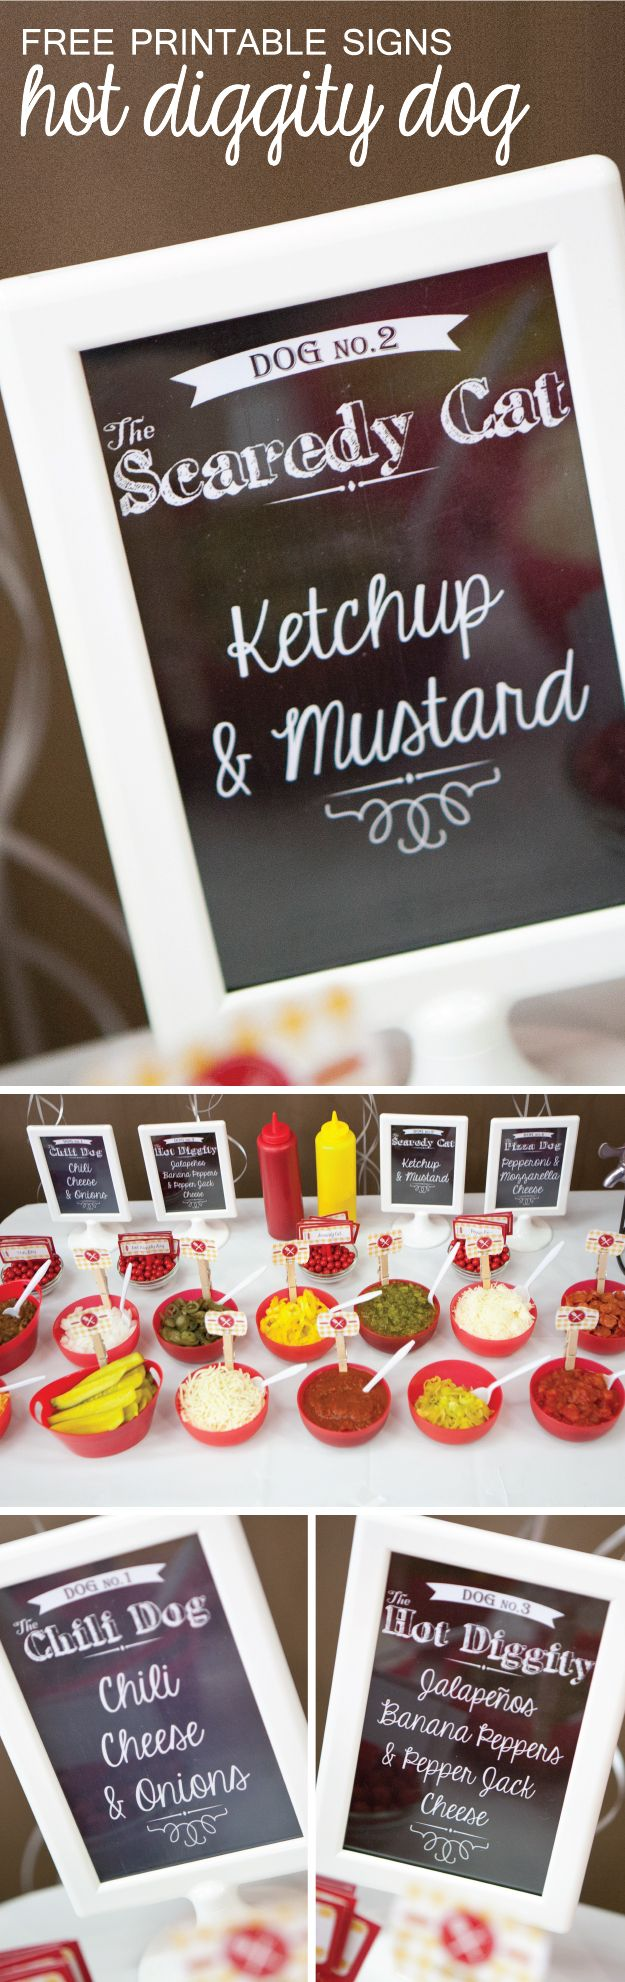 Hot Dog Party Supplies: Hot Diggity Dog Free Printable Signs #BigDot #HappyDot | Summer Party Ideas